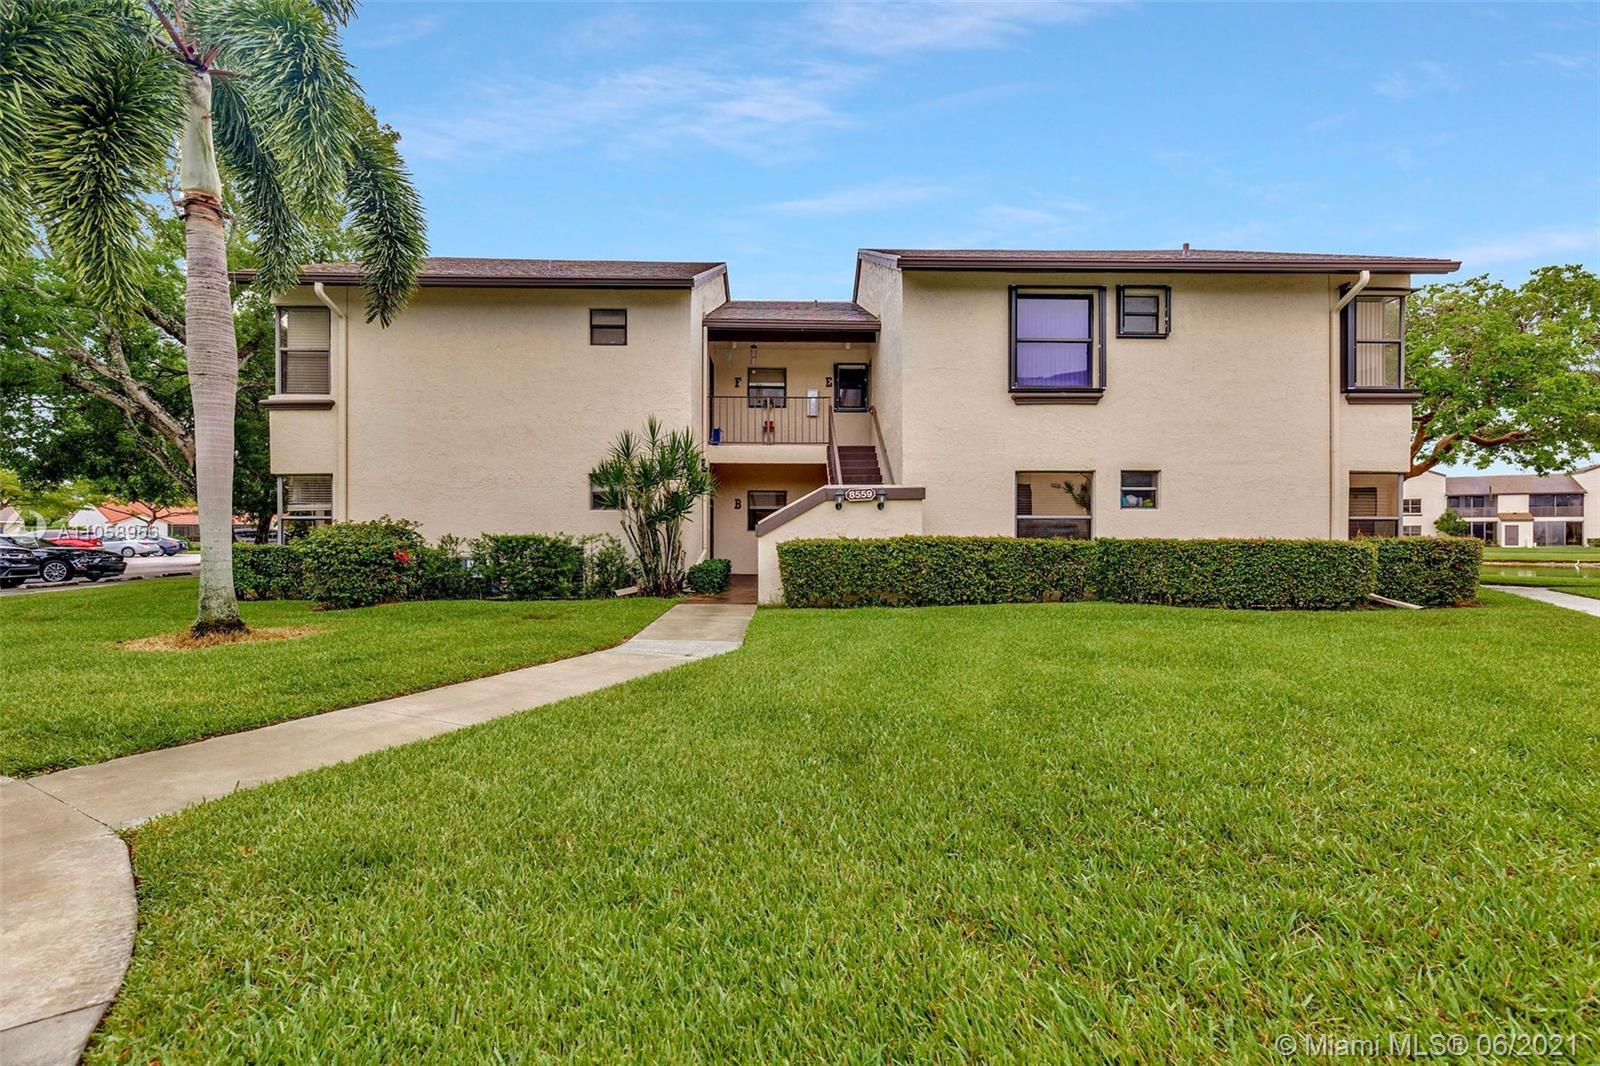 AMAZING OPPORTUNITY! BEAUTIFUL UPDATED 2 BEDROOM 2 BATHROOM, 1st FLOOR CONDO IS PERFECTLY NESTLED IN